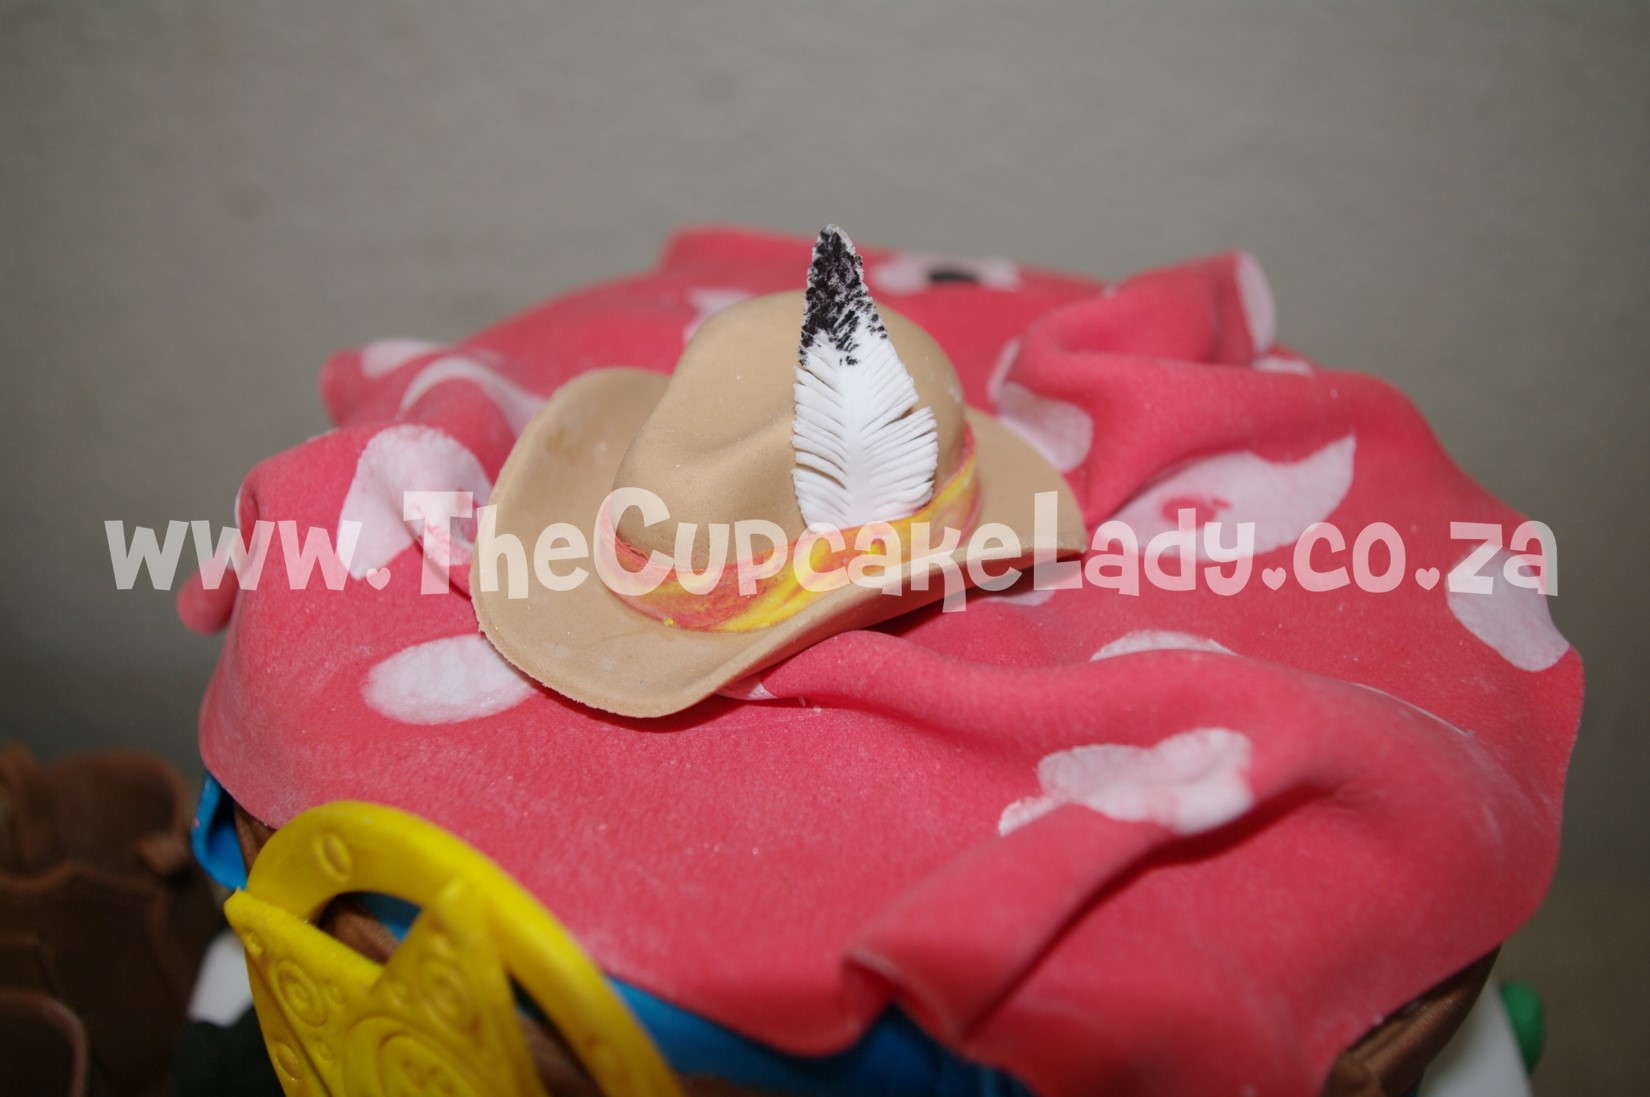 cowboy theme, western theme, two tier cake, birthday cake, custom made sugar paste fondant decorations - bandana, stetson